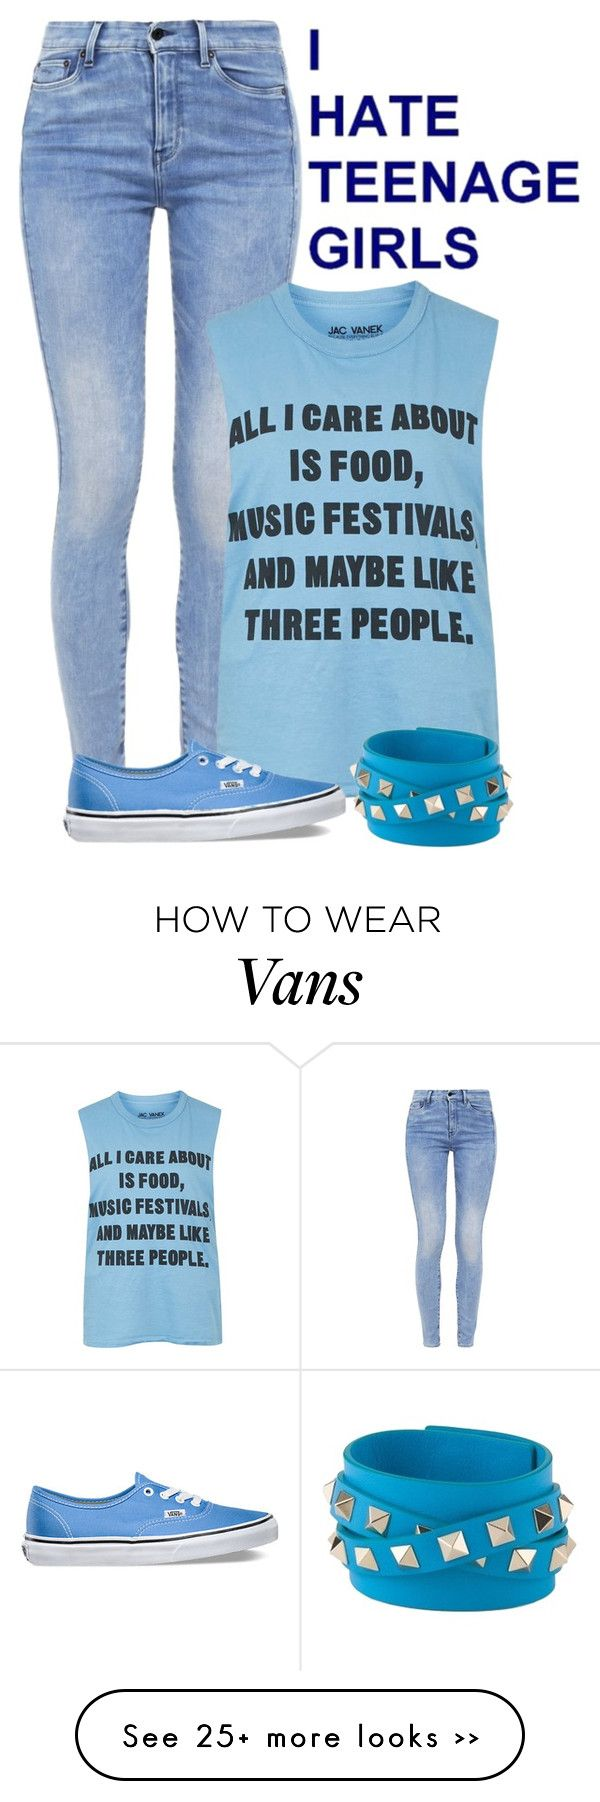 """""""๑ vans ๑"""" by nika-love on Polyvore featuring G-Star, Topshop, Vans and Valentino"""